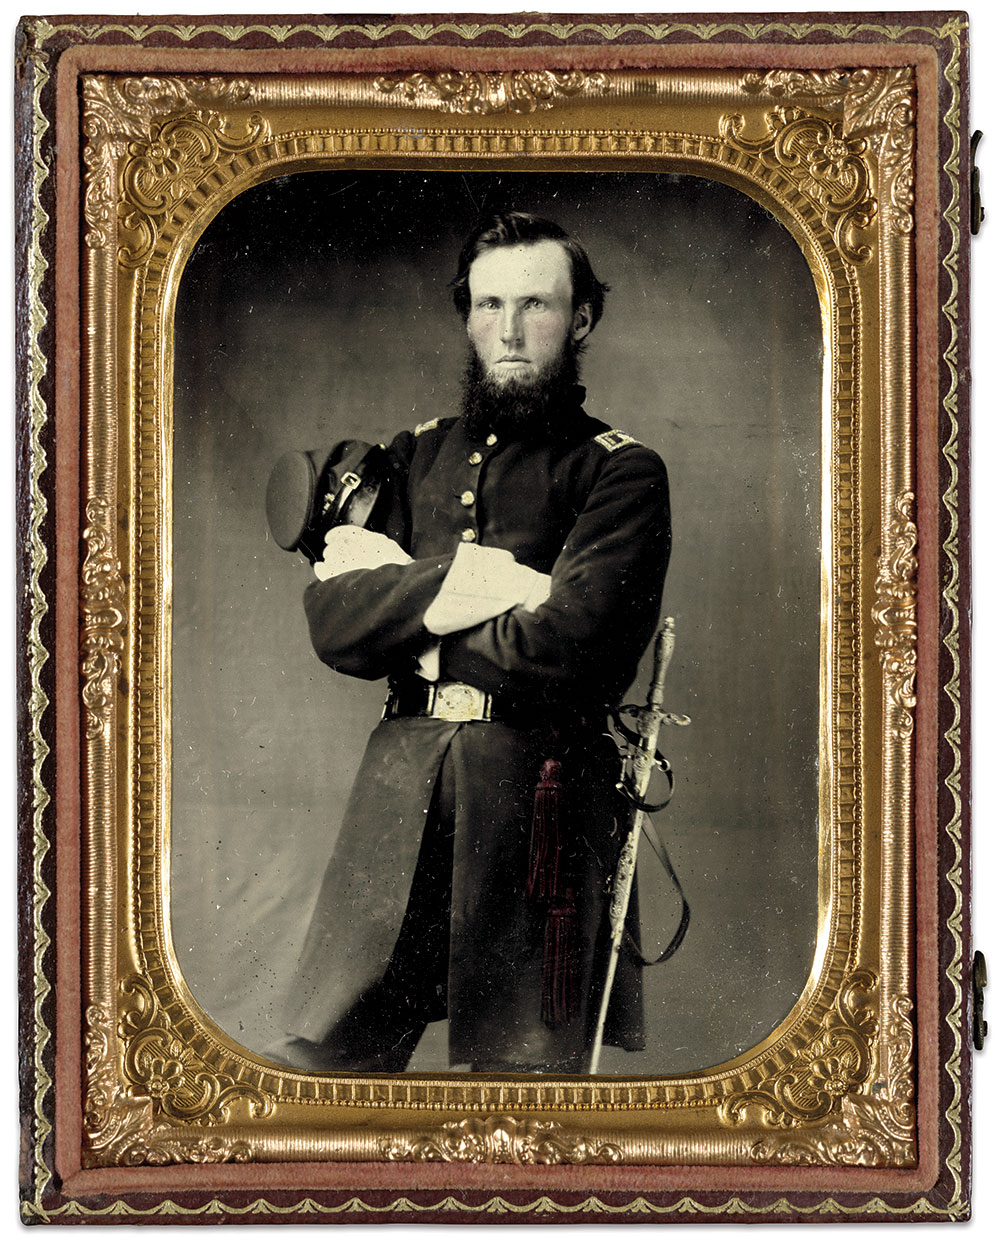 IDENTIFIED USING CWPS: Surg. Francis Marion Eveleth (1832-1895) of the 7th Maine Infantry and the 1st Maine Veteran Volunteers. Quarter-plate tintype by an anonymous photographer. The Liljenquist Family Collection at the Library of Congress.